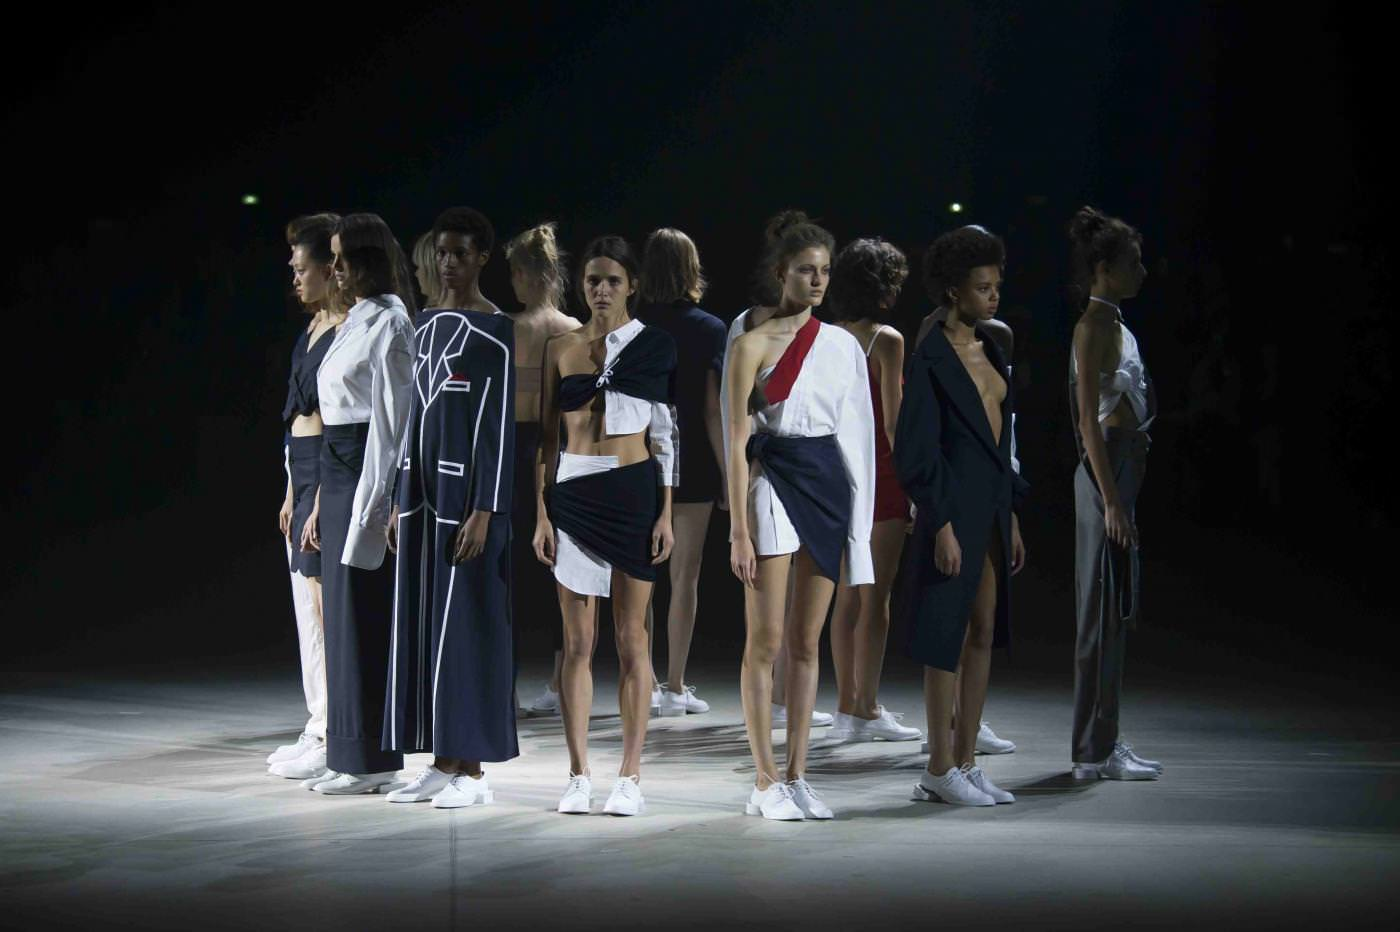 BEST OF 2015: Simon Porte Jacquemus wins the LVMH Special Jury Prize